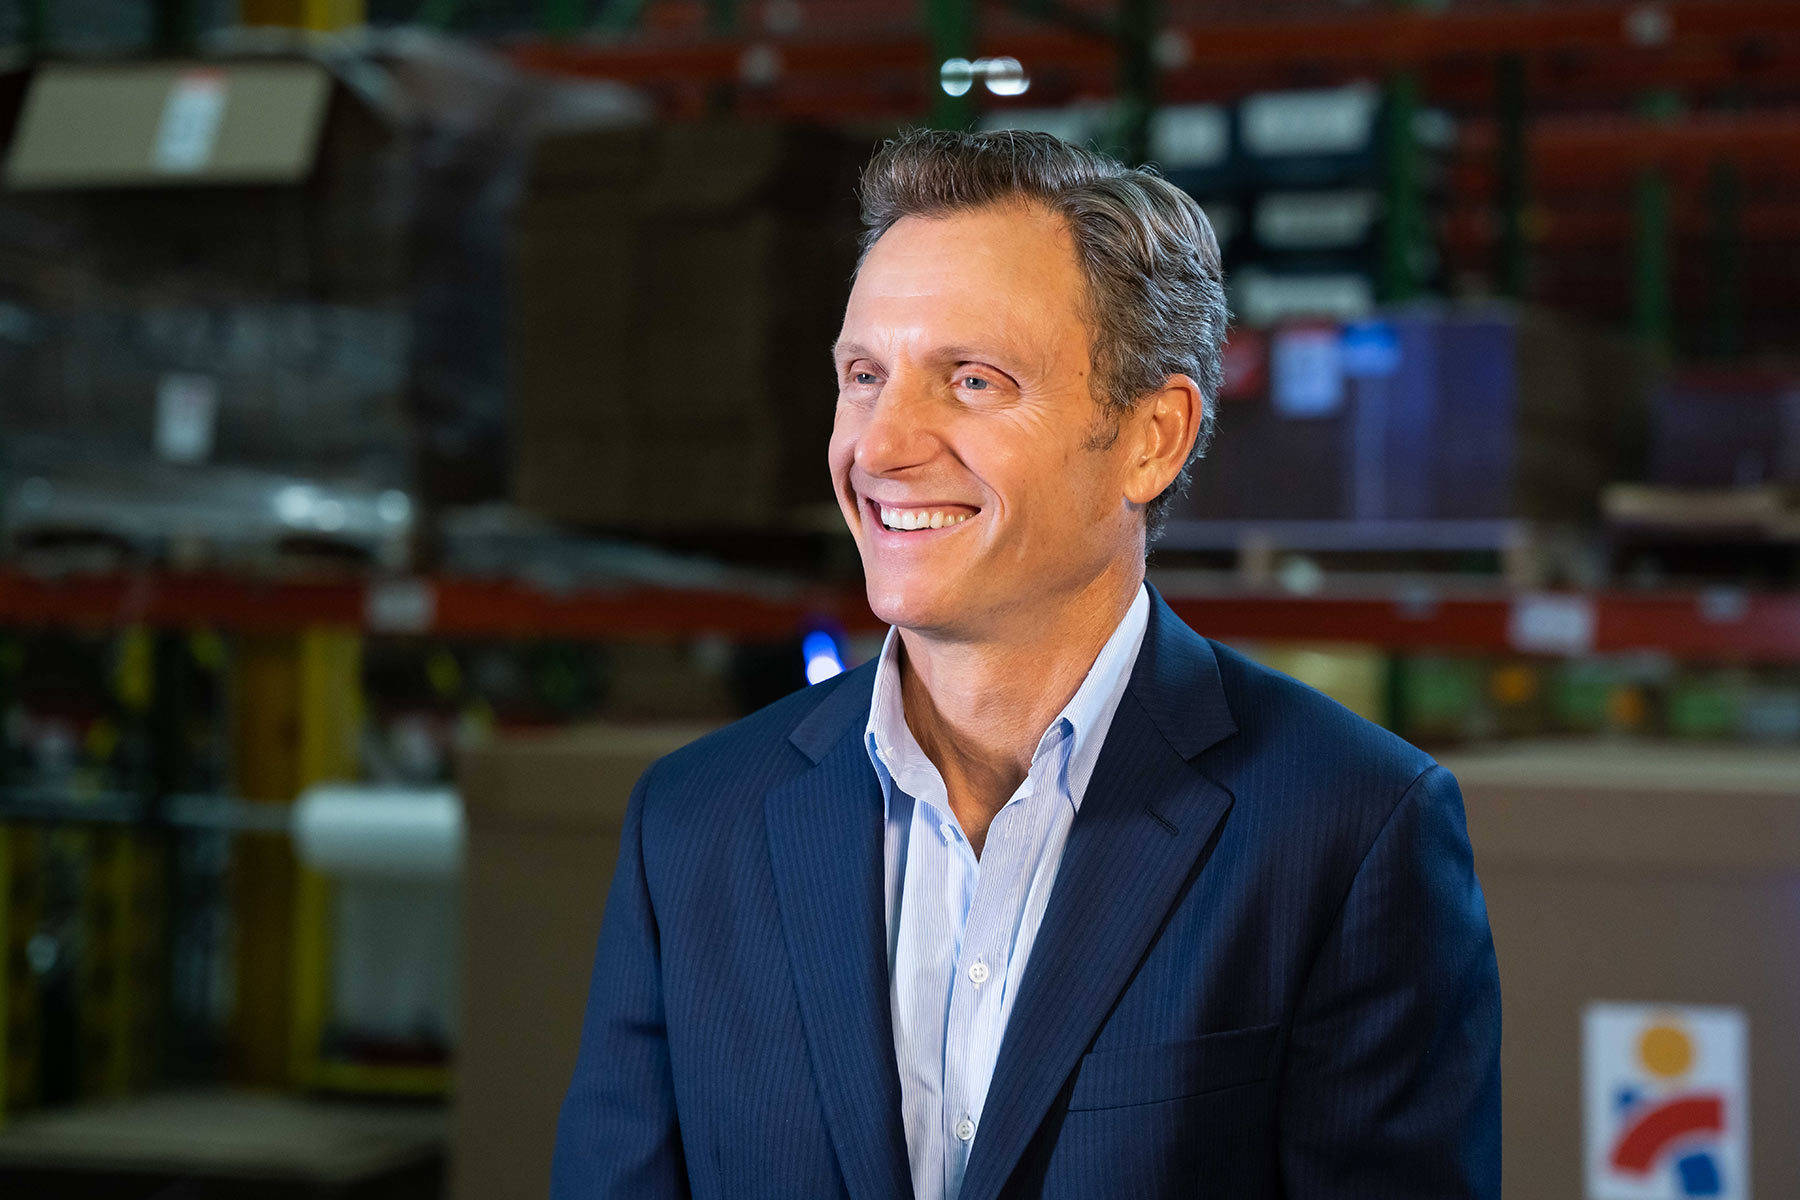 Actor and Americares Board Member Tony Goldwyn co-hosts the Americares Airlift Benefit Livestream at Americares Global Distribution Center in Connecticut on Oct. 2, 2021. Photo by Mike Demas/Americares.